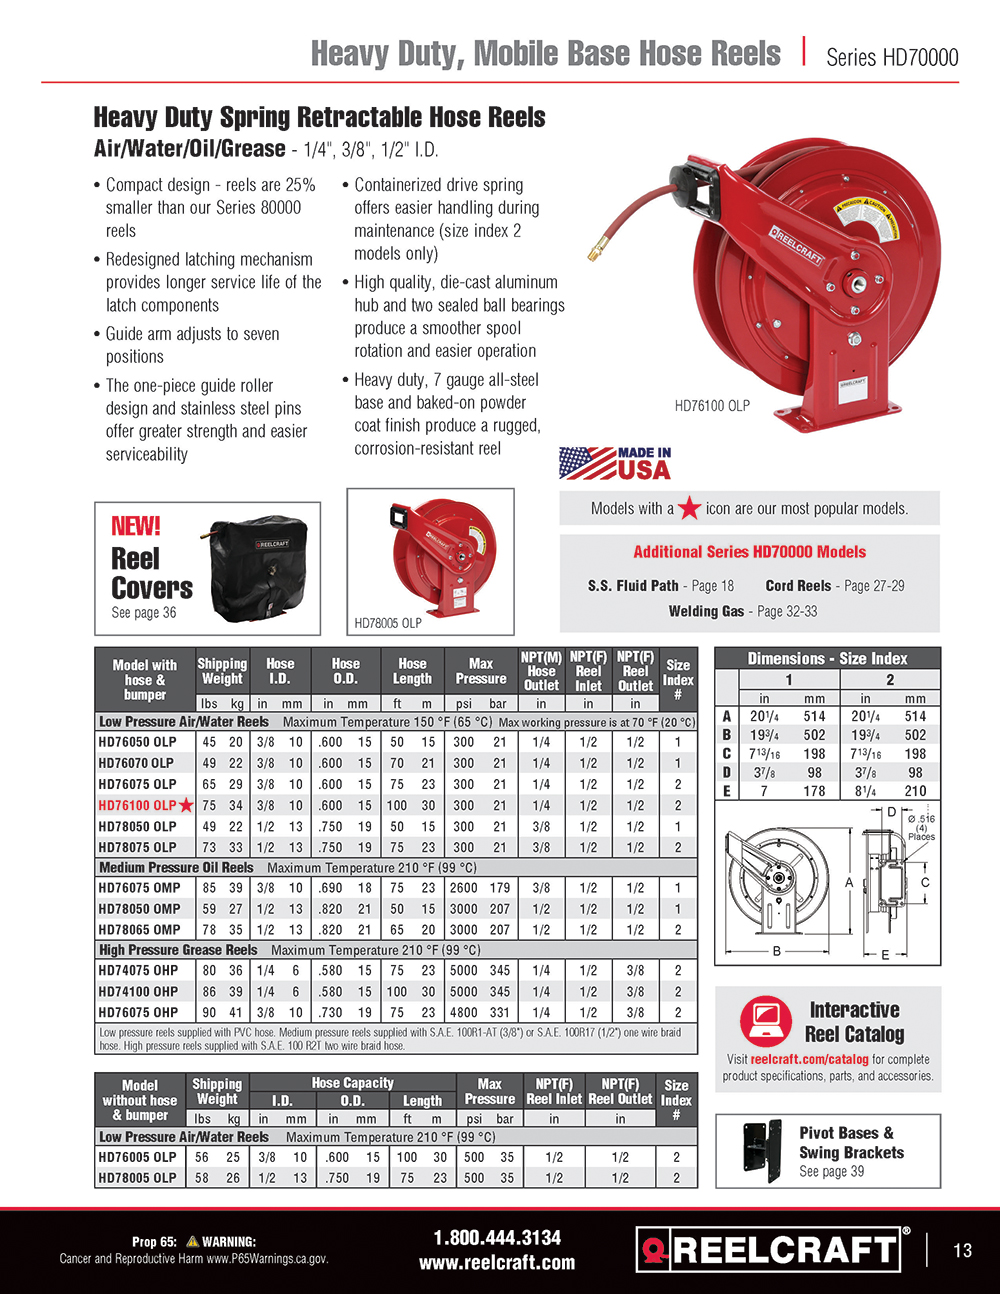 Reelcraft Catalog Page 13 - Series DP Hose Reels